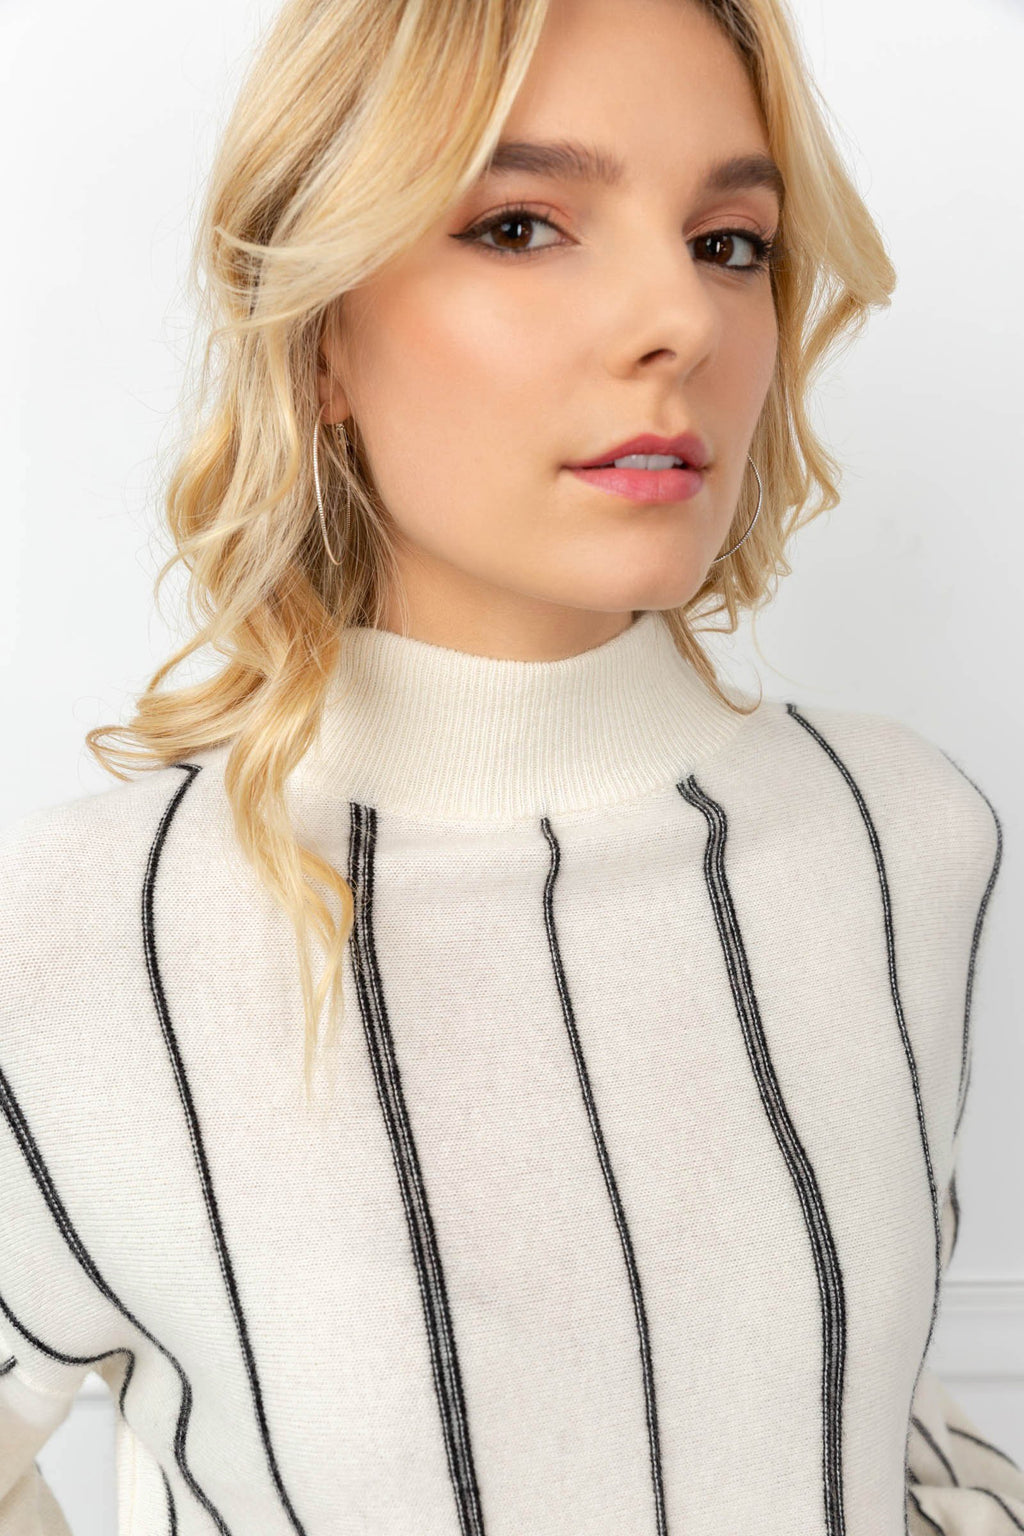 Kendra Striped Sweater White in Tops by J.ING - an L.A based women's fashion line